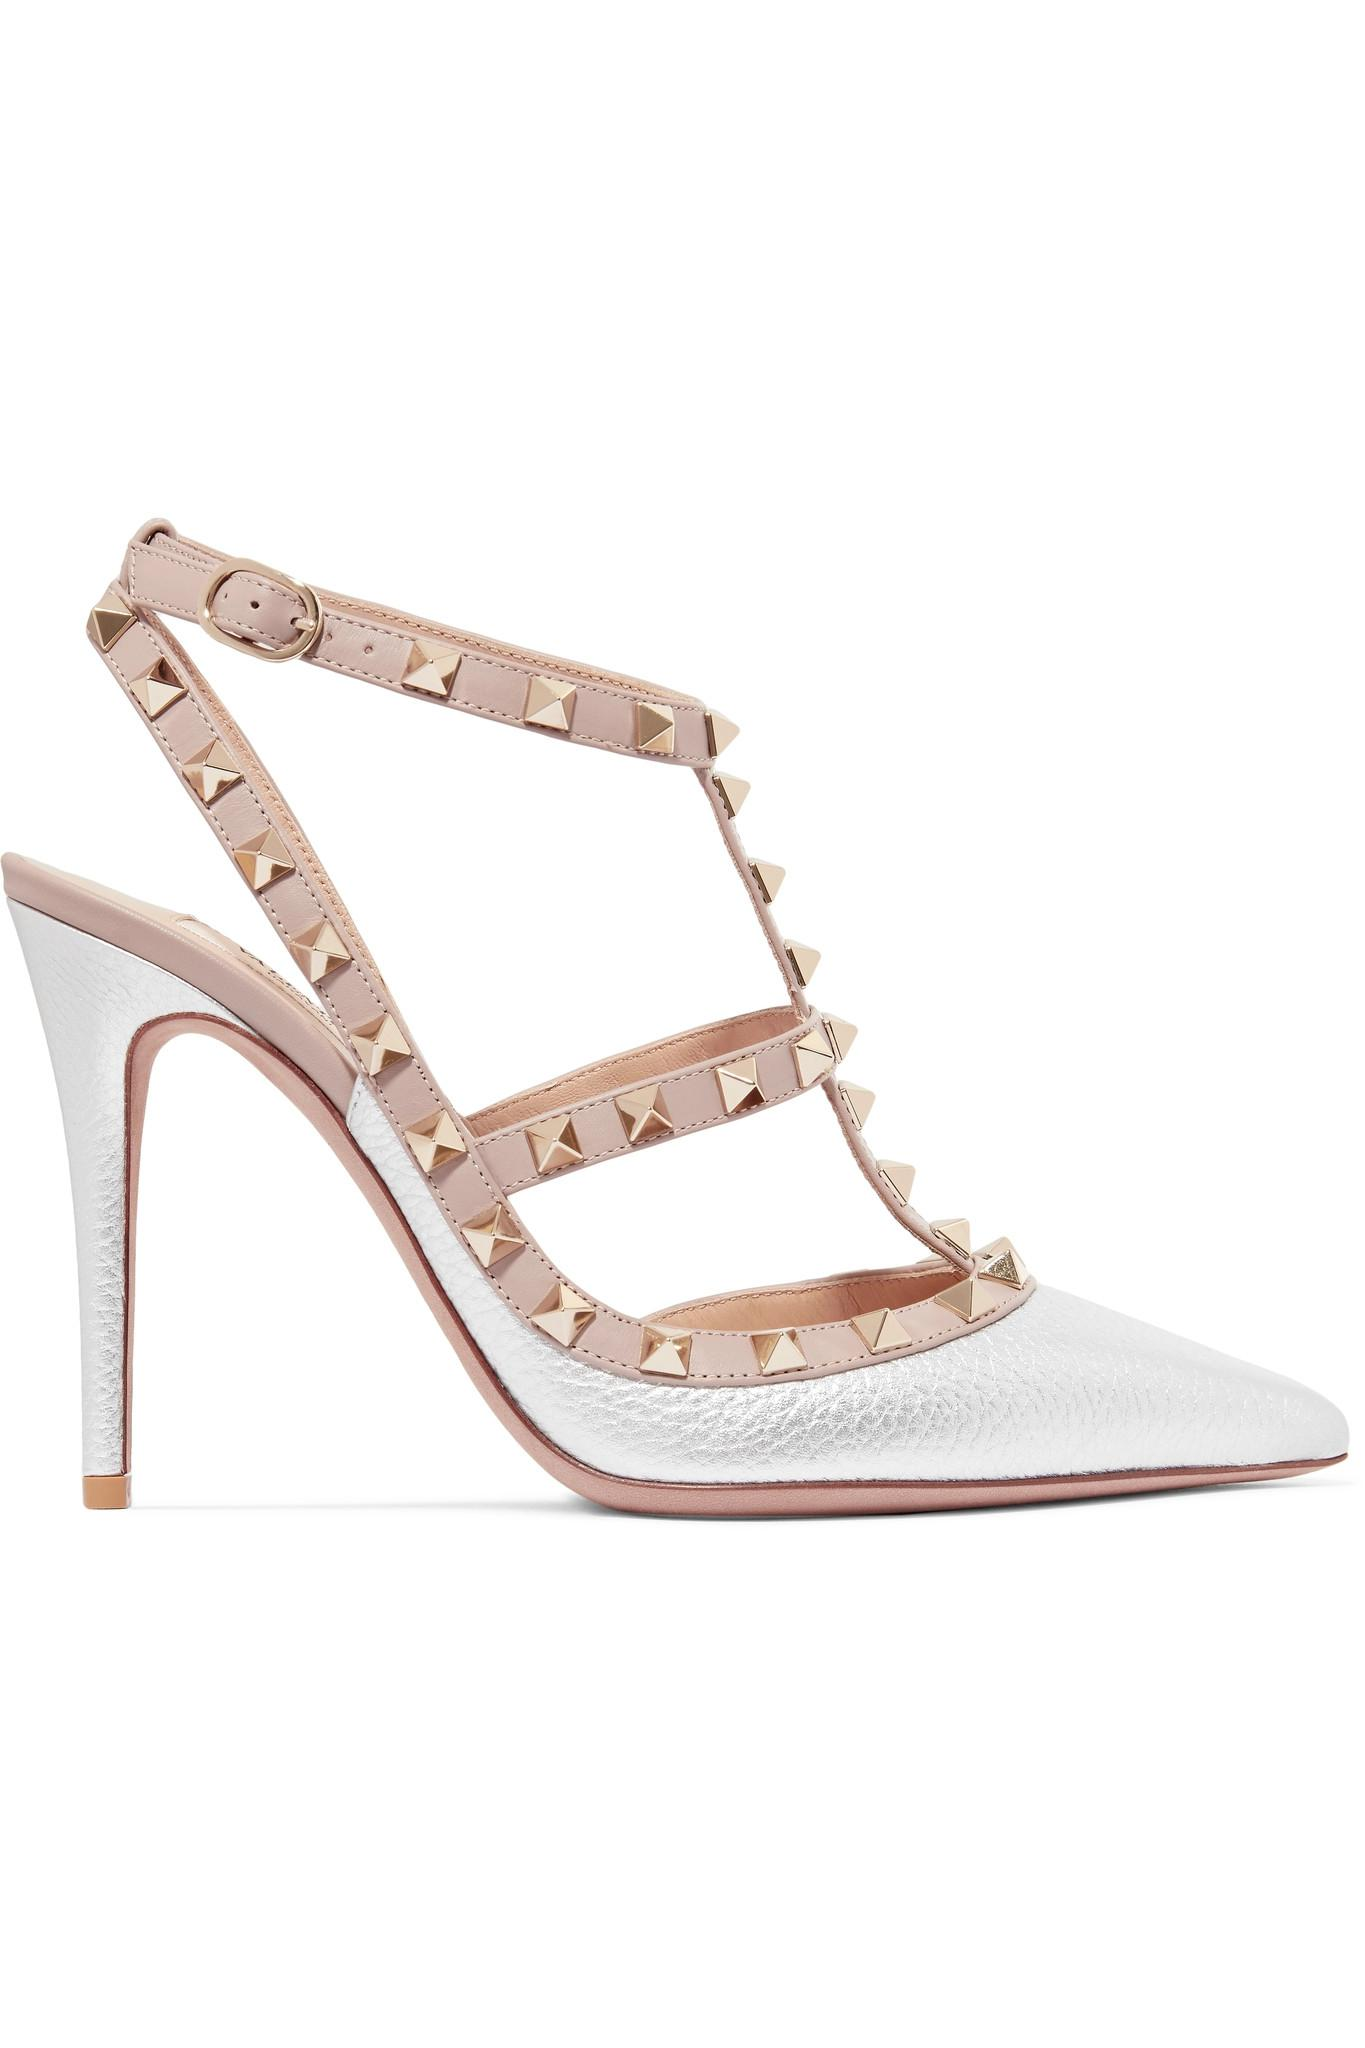 Valentino Garavani The Rockstud Textured-leather Pumps - Crimson Valentino